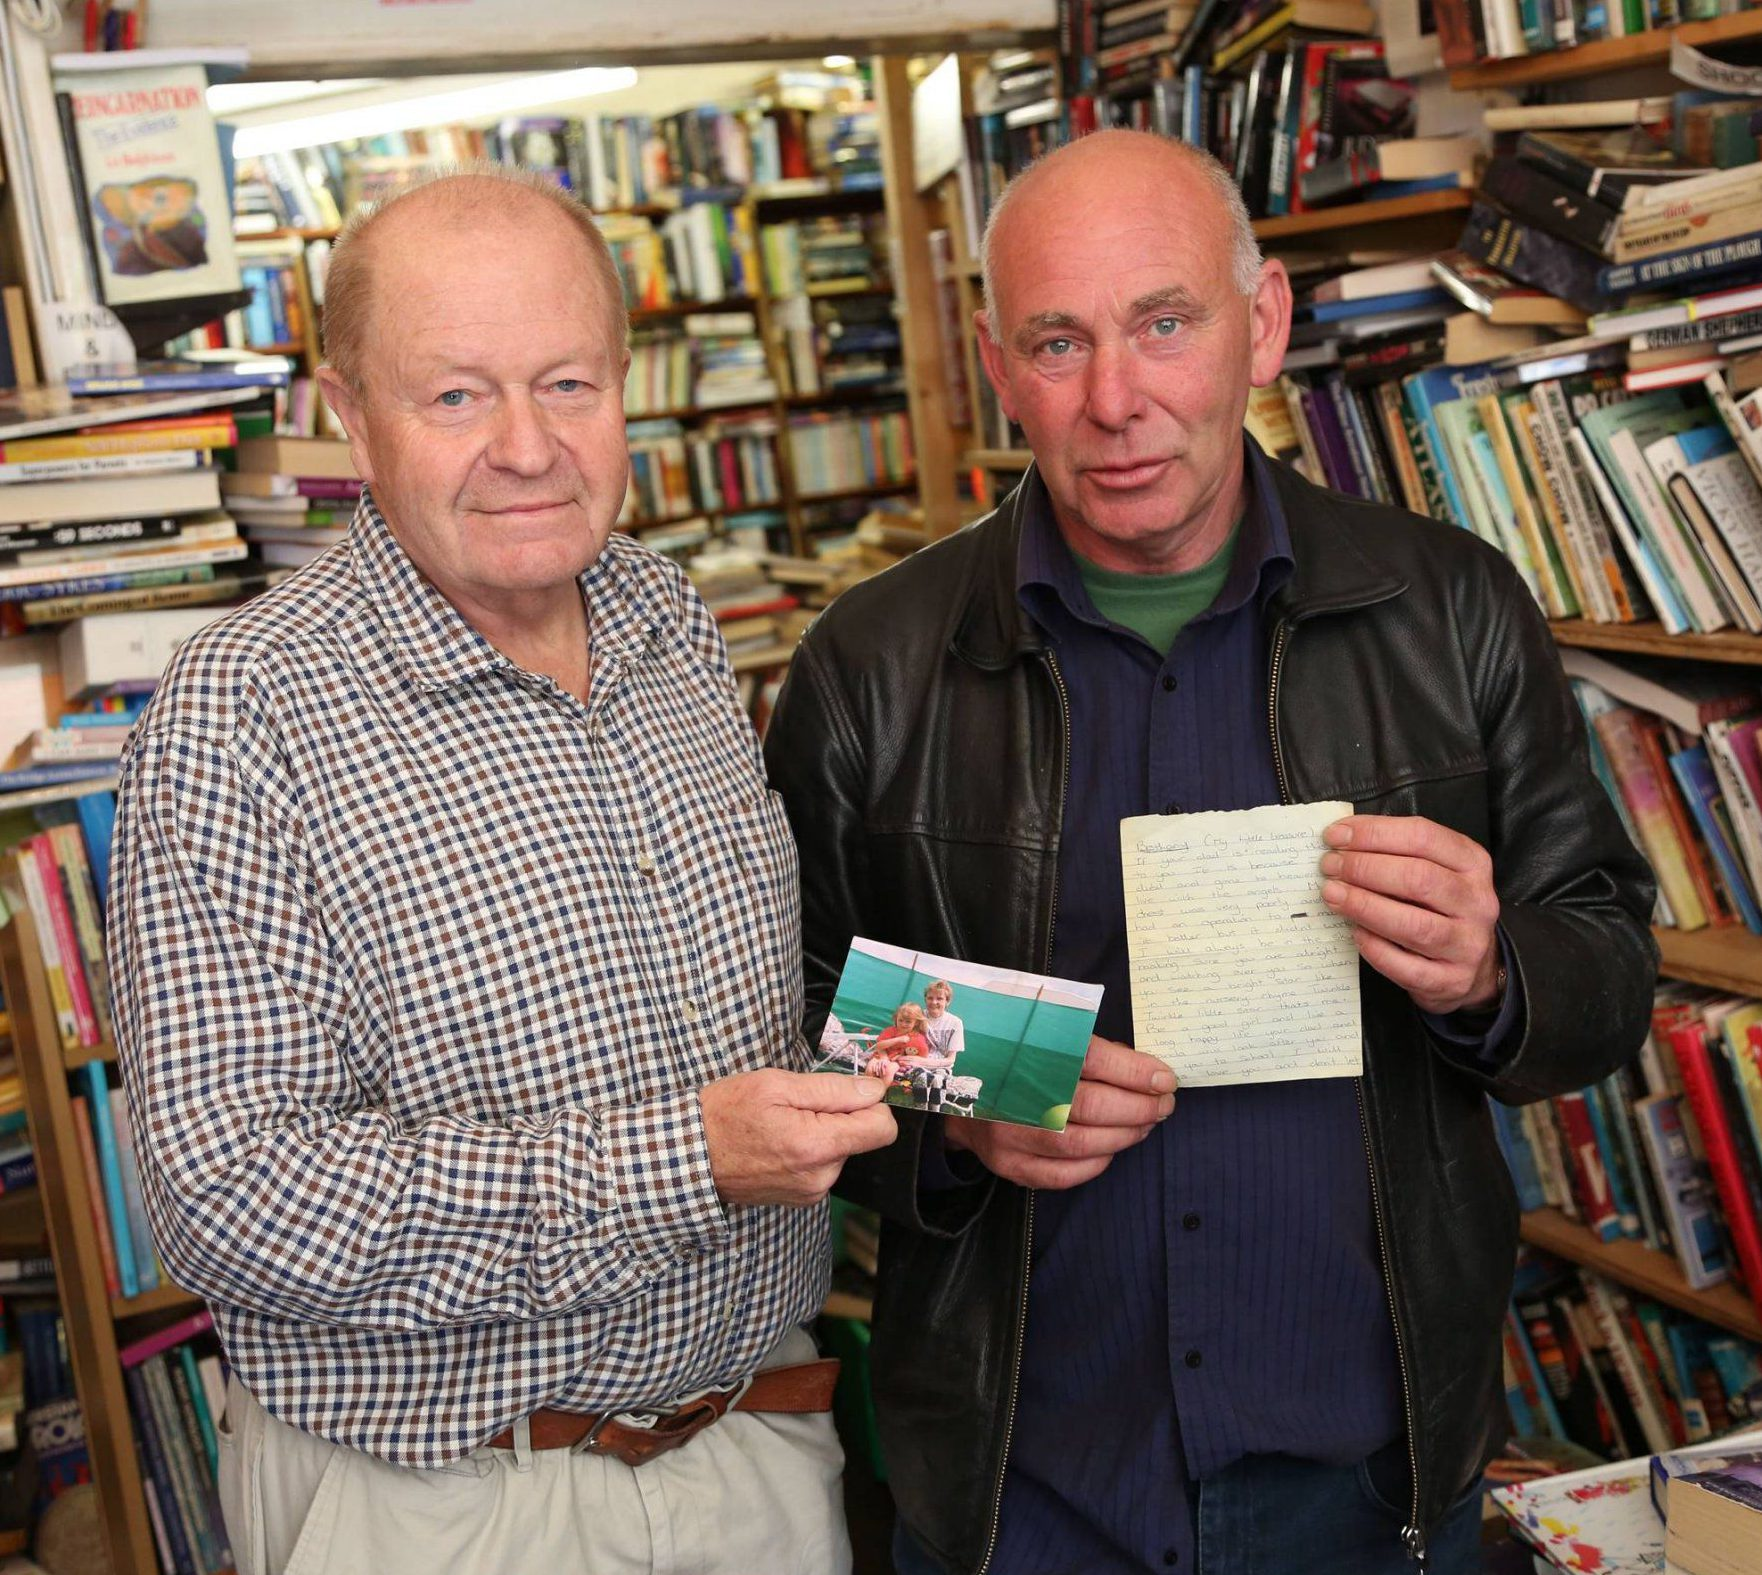 Dated 03/09/2016 Second-hand book shop owner Gordon Draper, from Bishop Auckland, County Durham, who discovered a heart-rending farewell letter from a dying mother in the pages of a book along with a photograph of the unknown woman with her daughter Bethany. Draper is now attempting to trace the family so he can return the precious memento. Pictured (right) with neighbouring shop owner Albert Mark, who is helping with the quest. See story North News NORTHERN ECHO COPYRIGHT - ONLY TO BE USED IN PRINTED EDITIONS - NOT TO BE USED ON-LINE WITHOUT FURTHER SPECIFIC PERMISSION AND LICENSE - IF USED WITHOUT PERMISSION THE NORTHERN ECHO RESERVE THE RIGHT TO TAKE LEGAL ACTION FOR BREACH OF COPYRIGHT AND DAMAGE TO BUSINESS